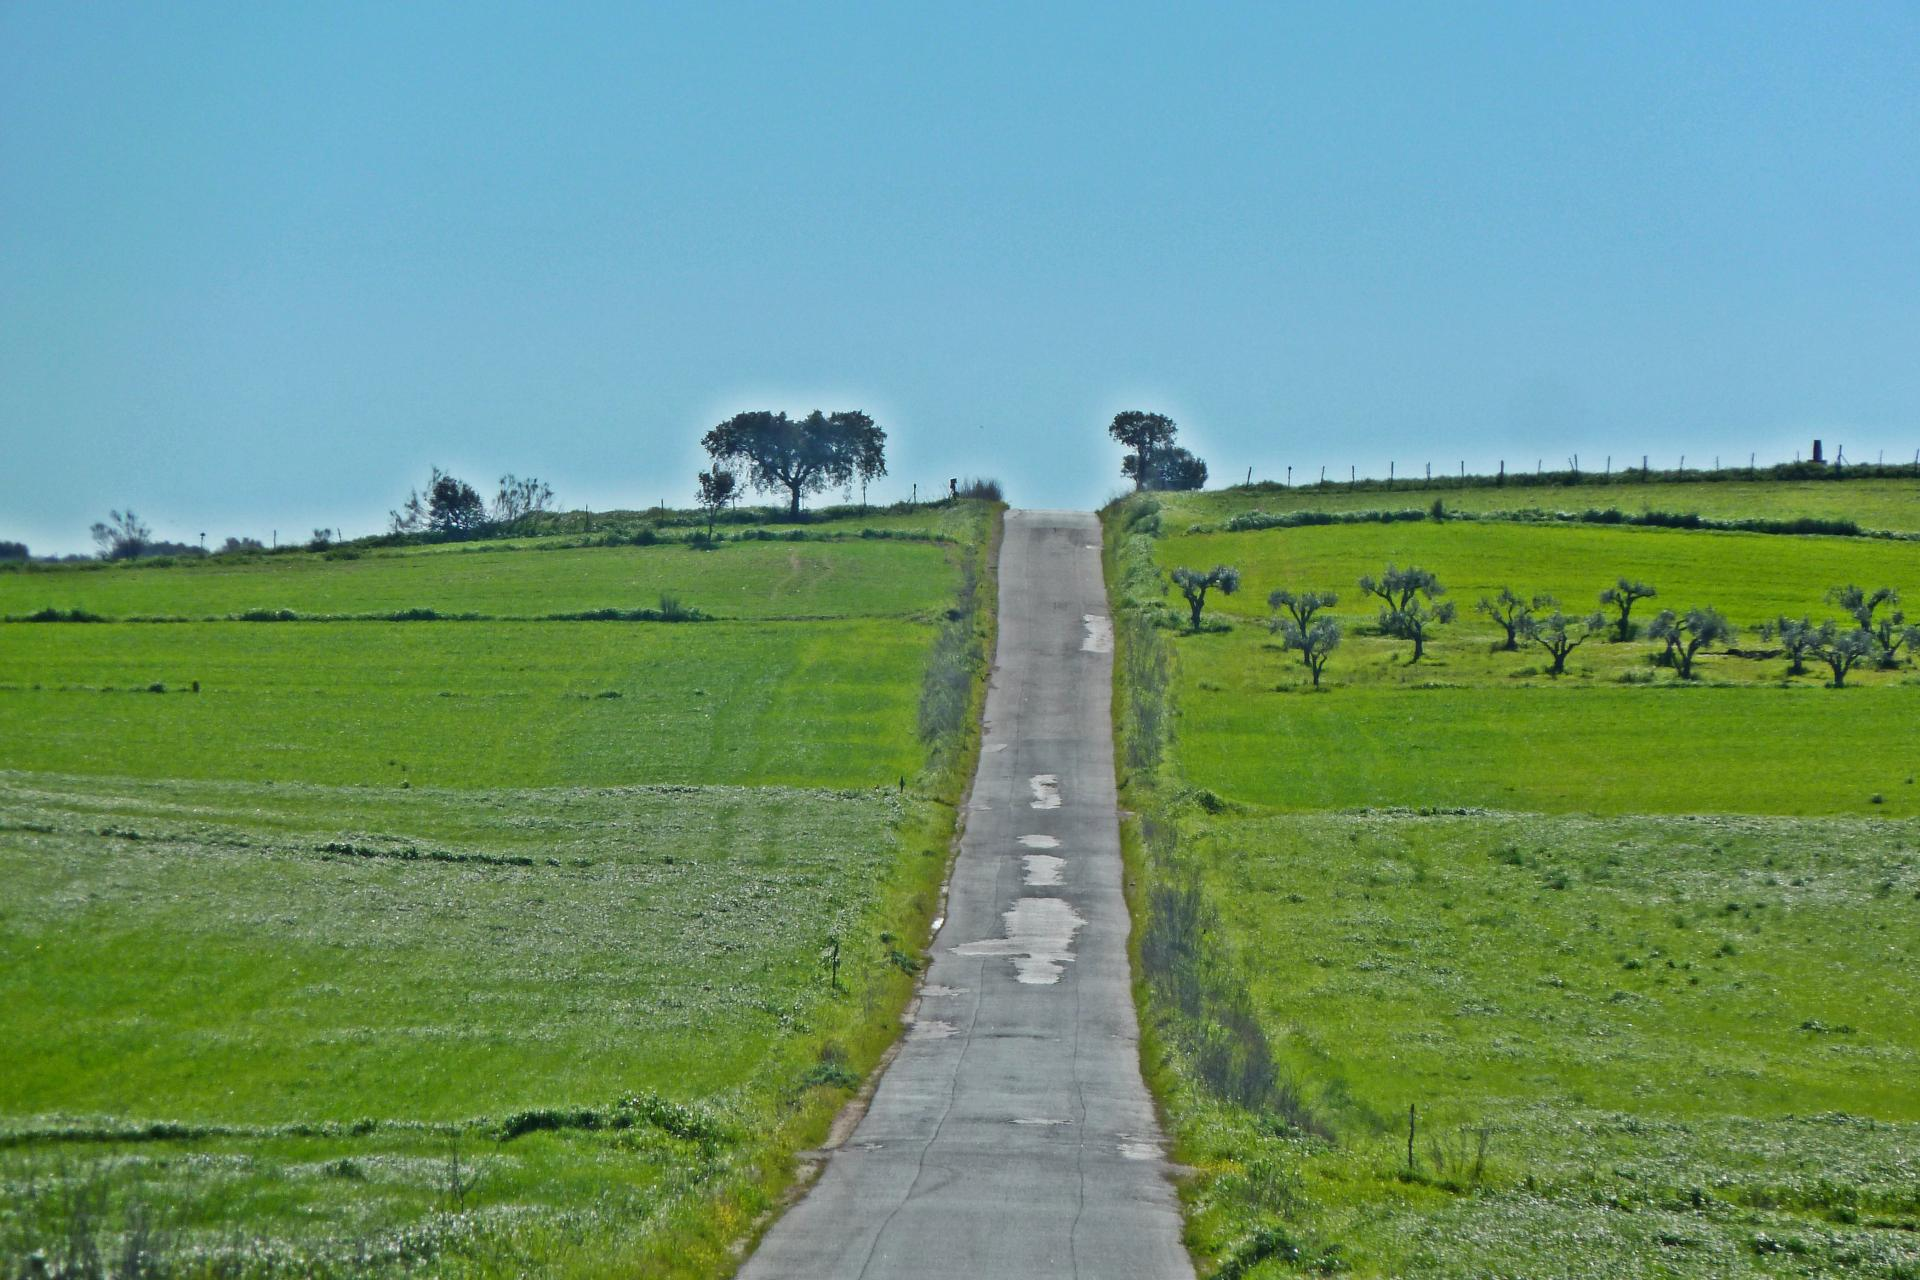 Portugal bicycle tour with Pousada deluxe hotel stays